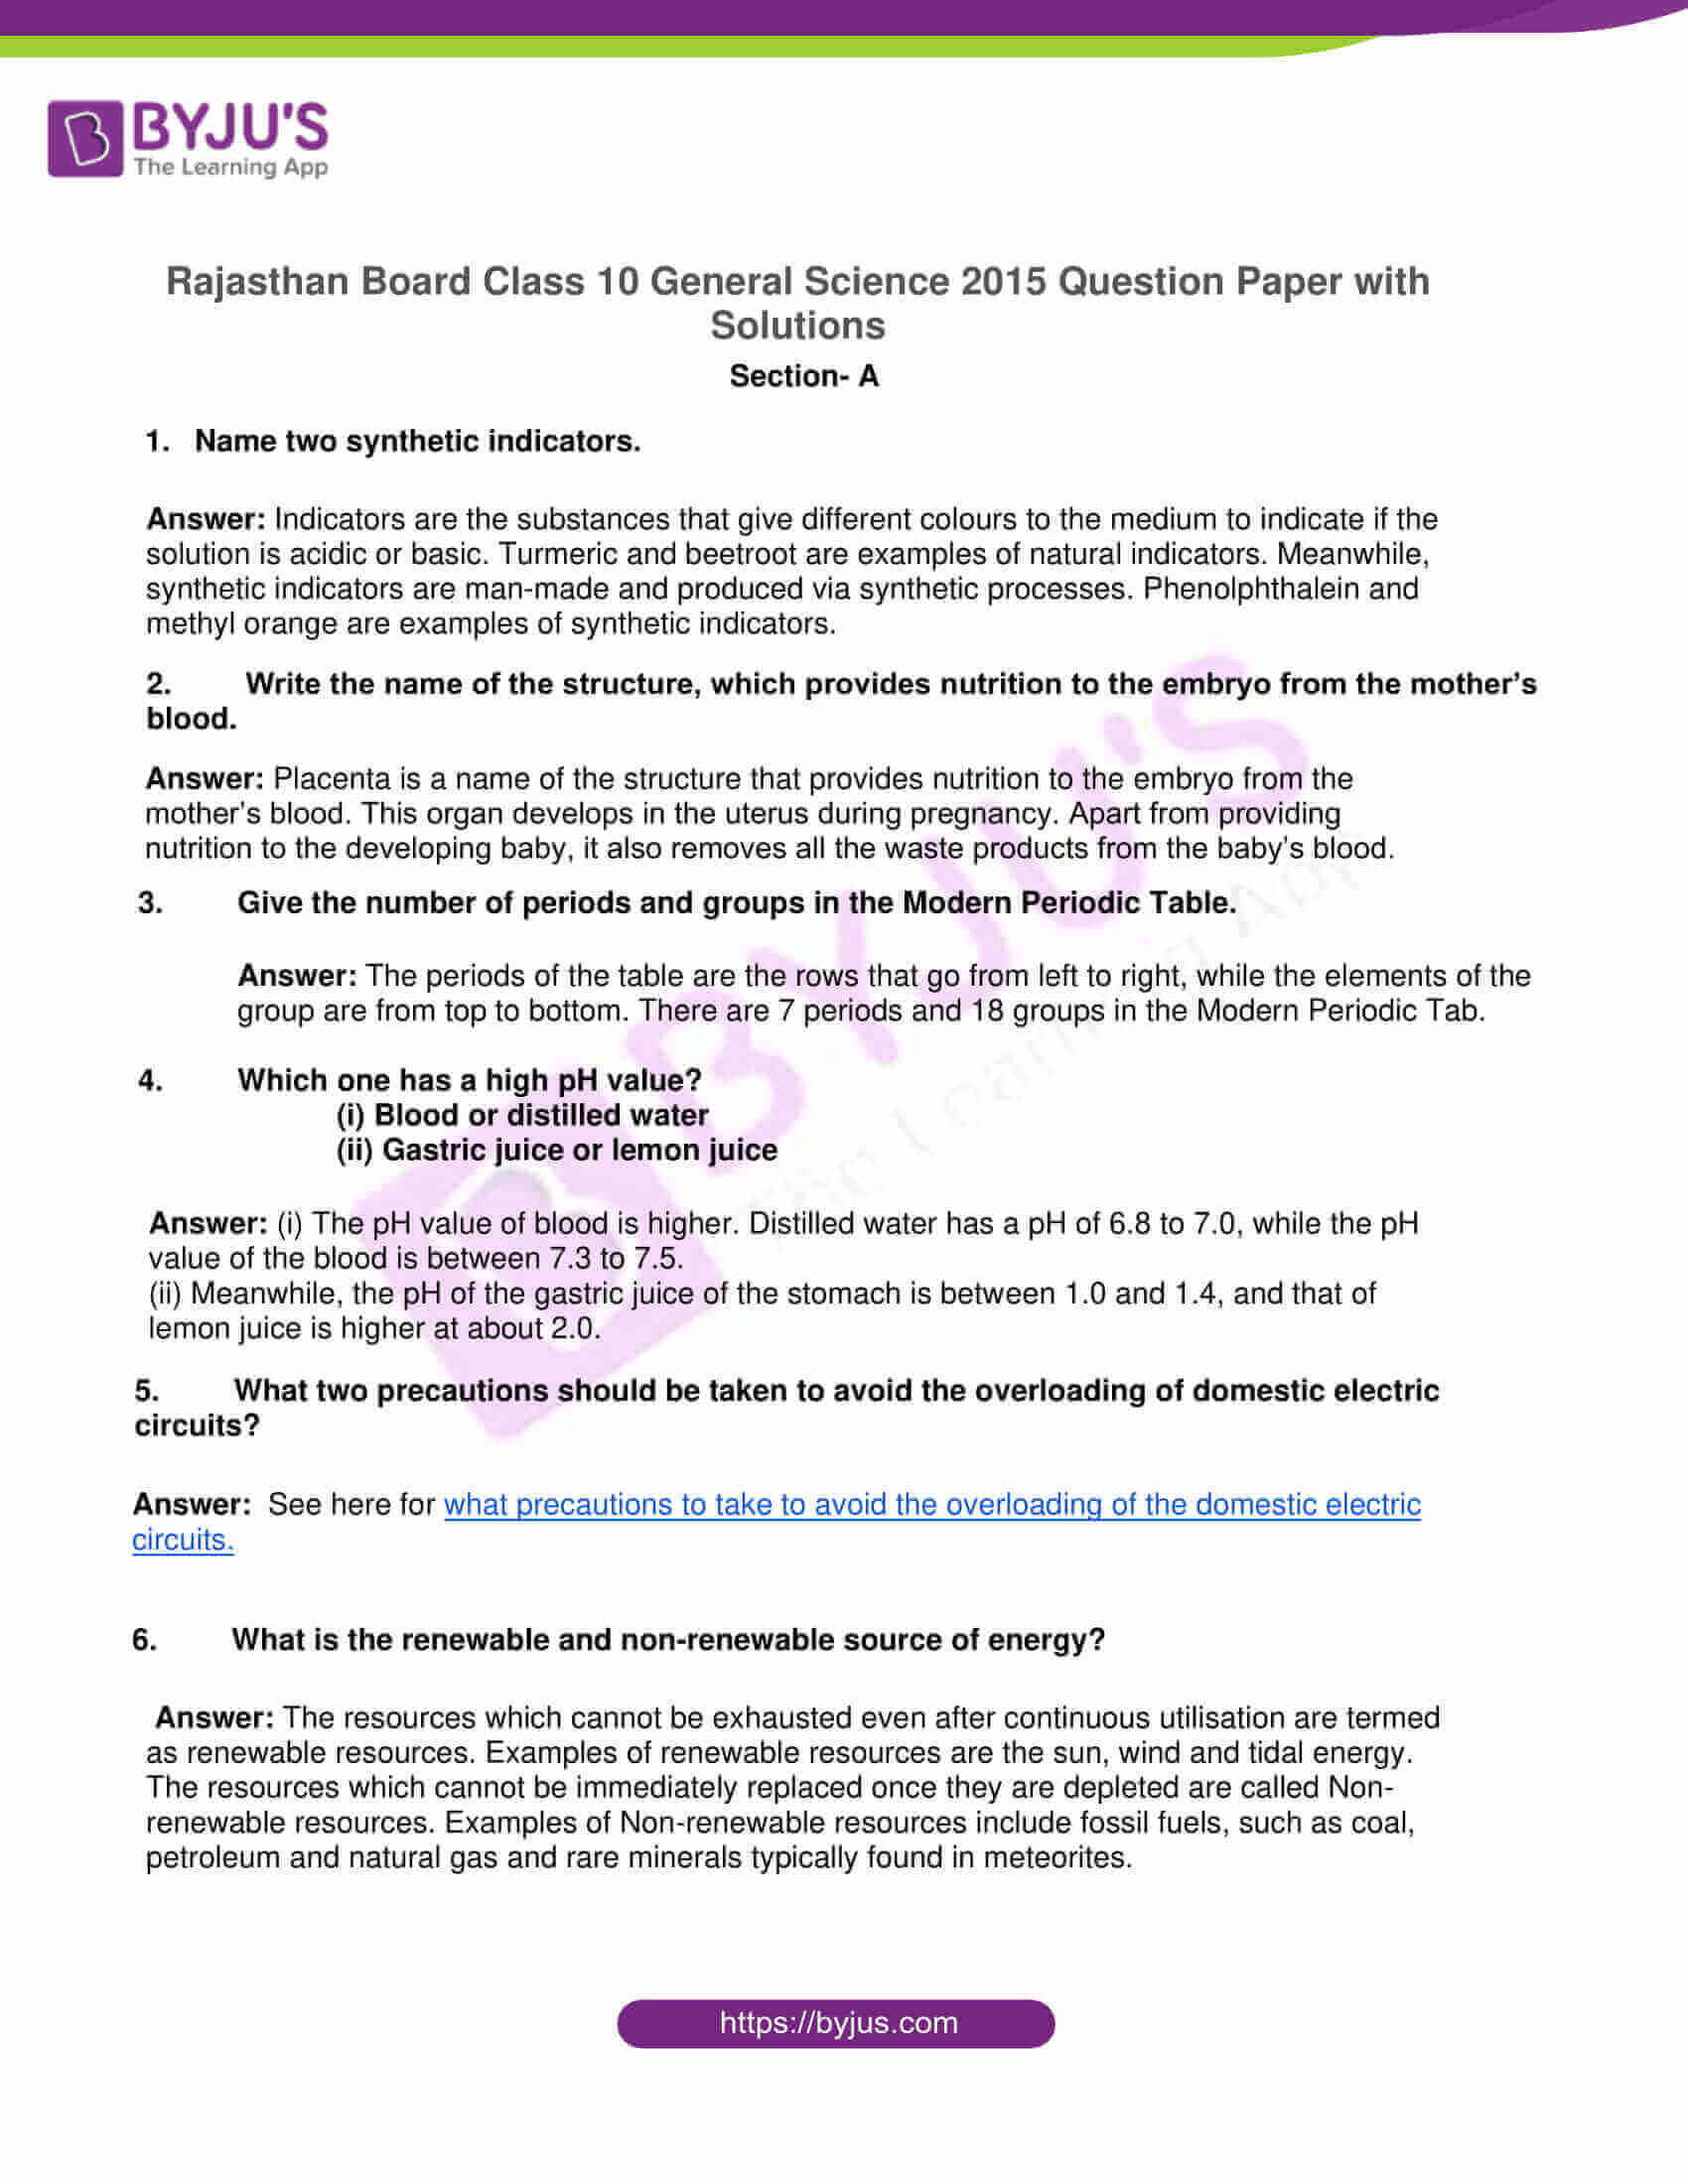 rajasthan board class 10 general science 2015 solutions 01